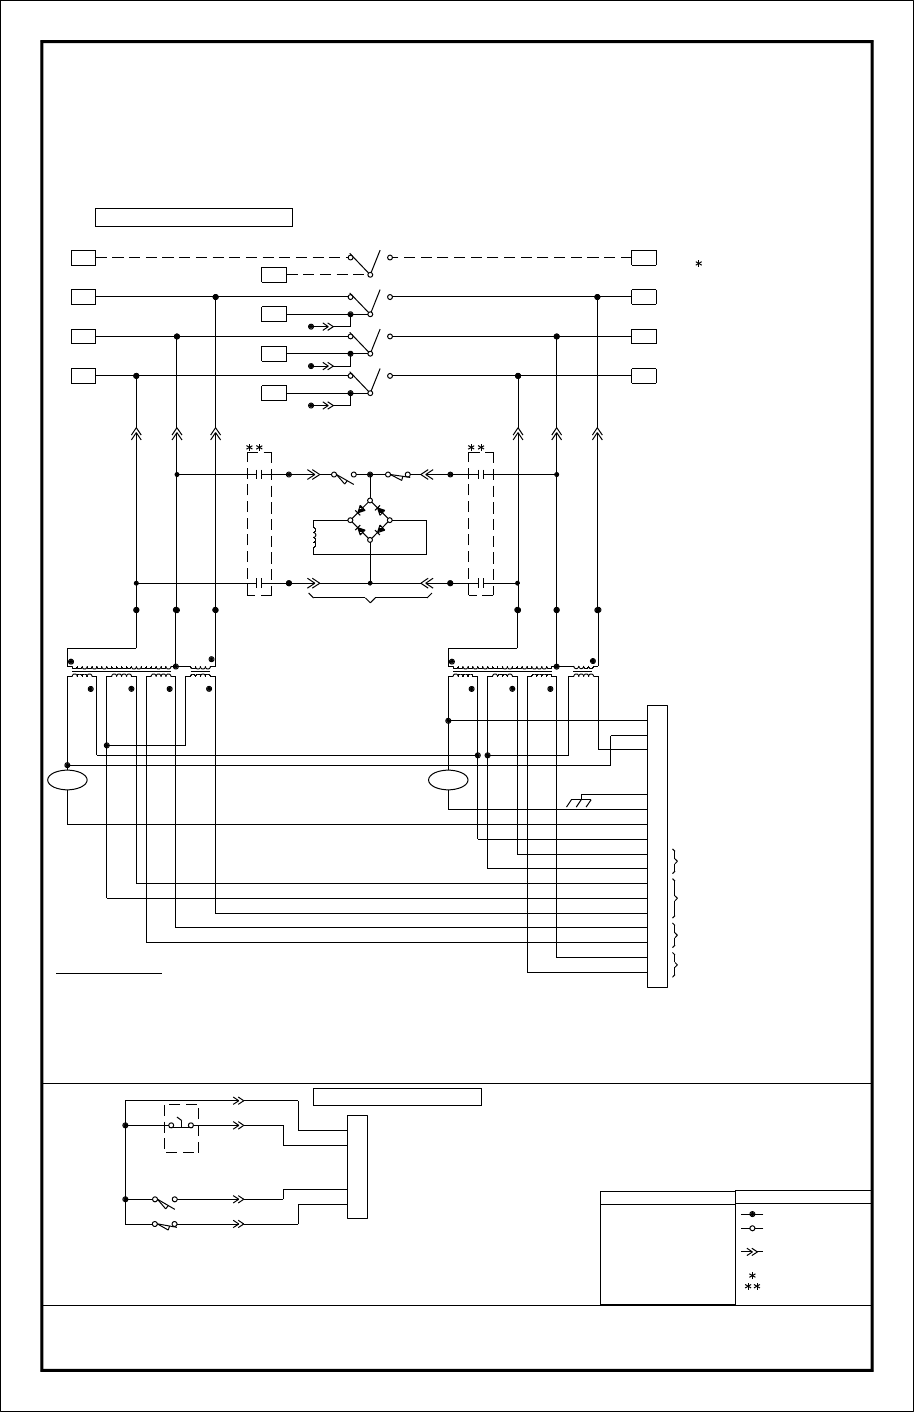 CTS AND CTSD AUTOMATIC TRANSFER SWITCH (ATS) ELECTRICAL SYSTEM   CAT  Machines Electrical SchematicCAT Machines Electrical Schematic